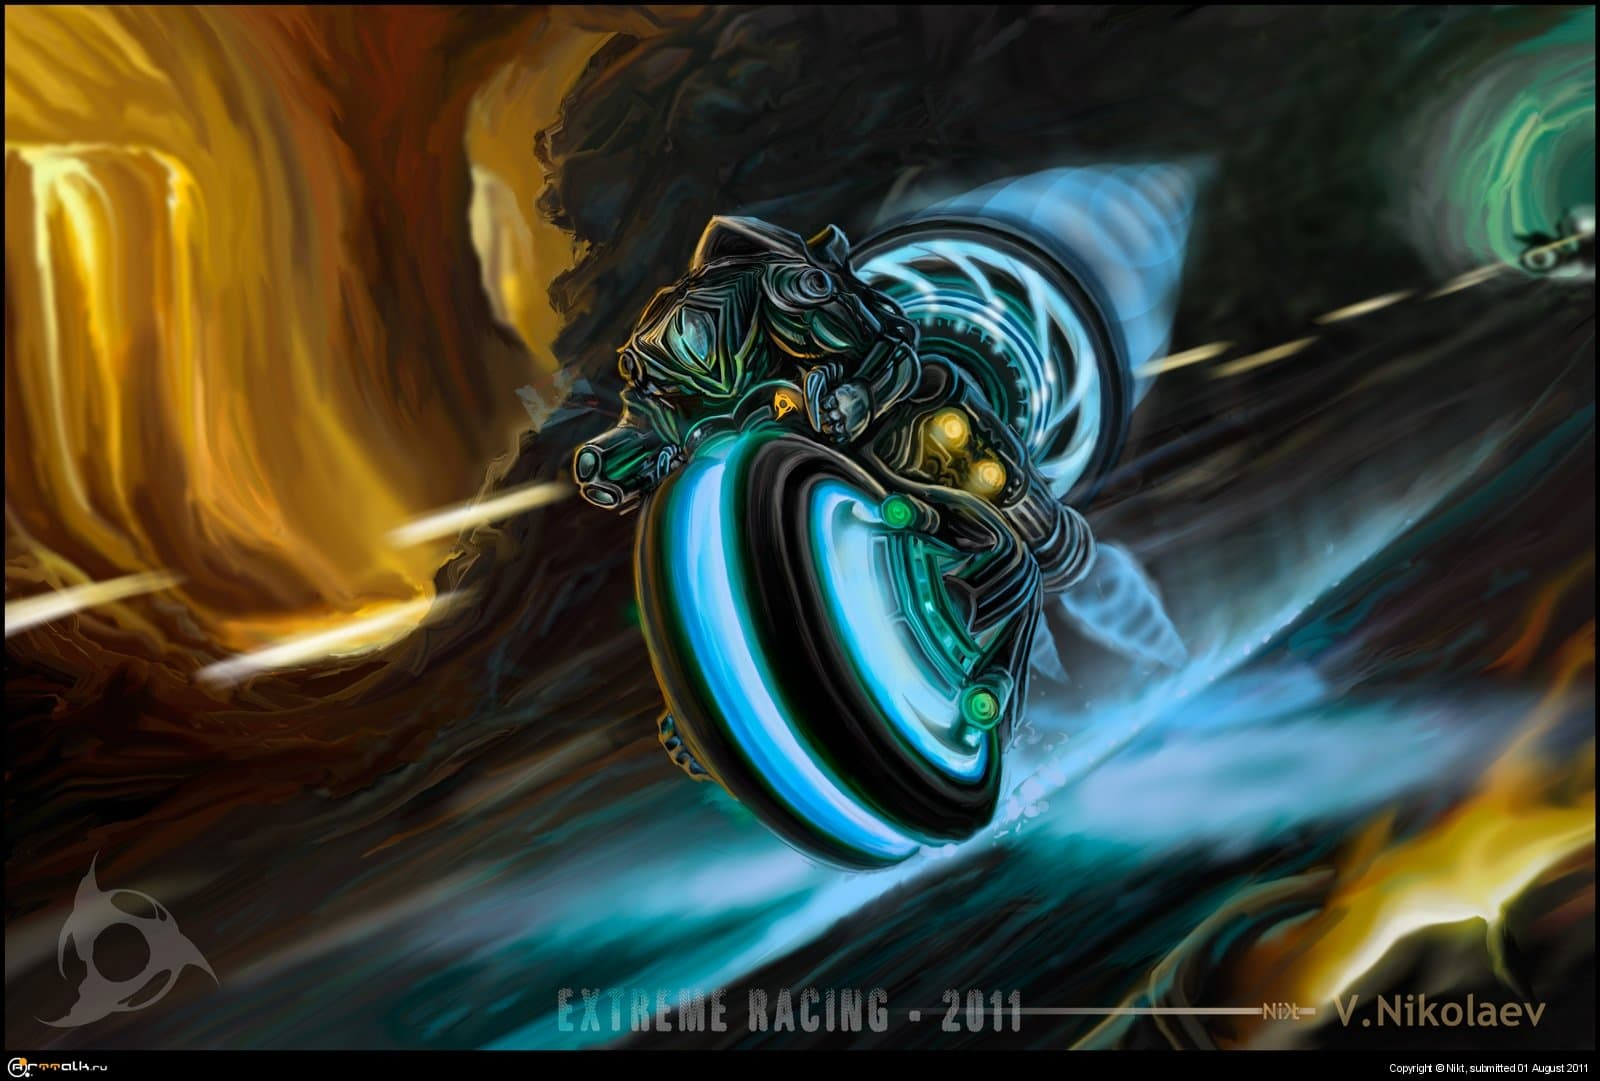 Biker From Extreme Racing